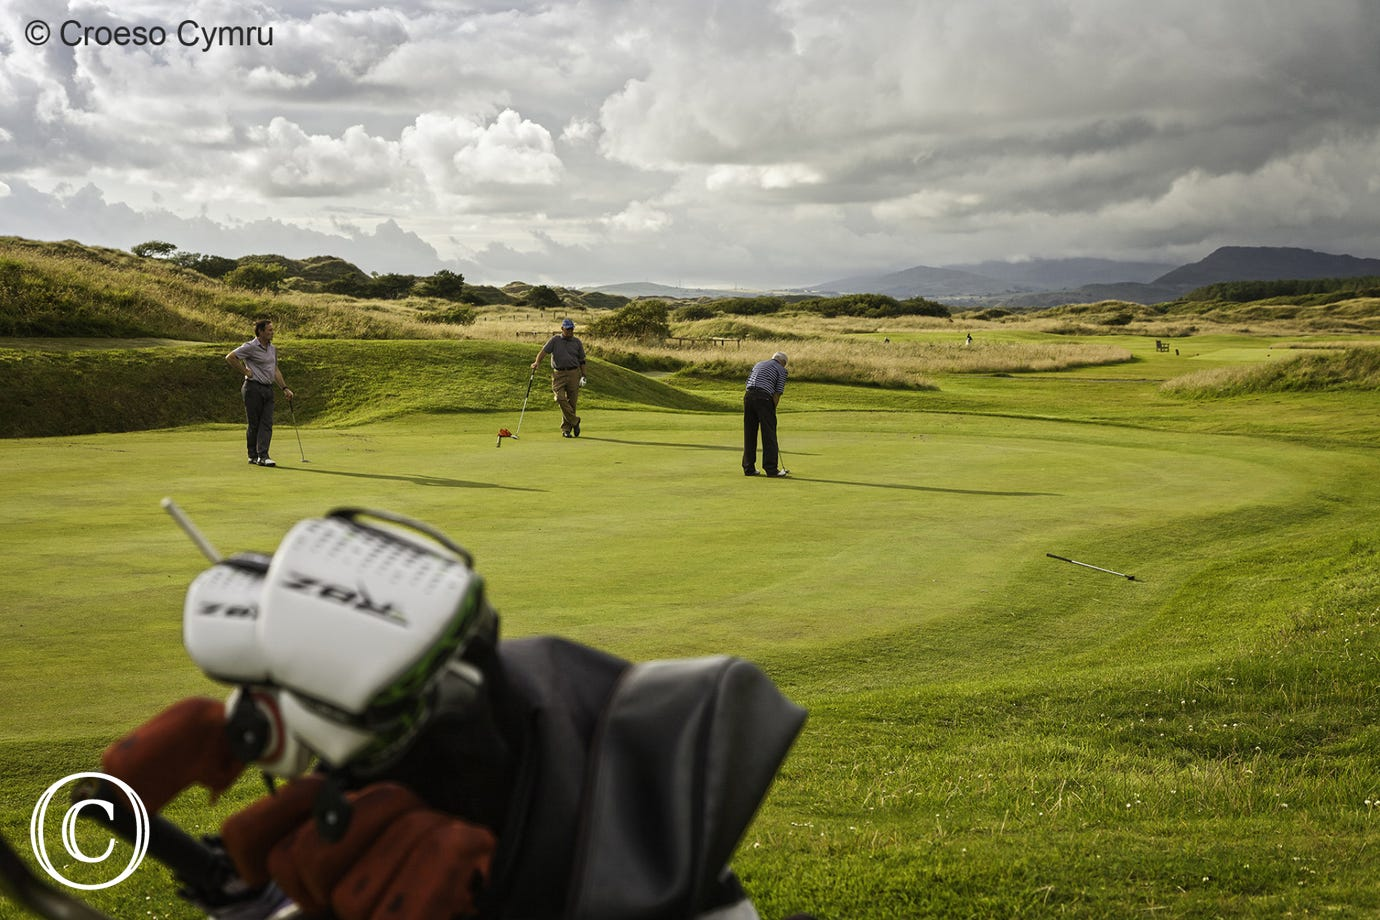 Enjoy a round of golf between the castle and the sea at Harlech